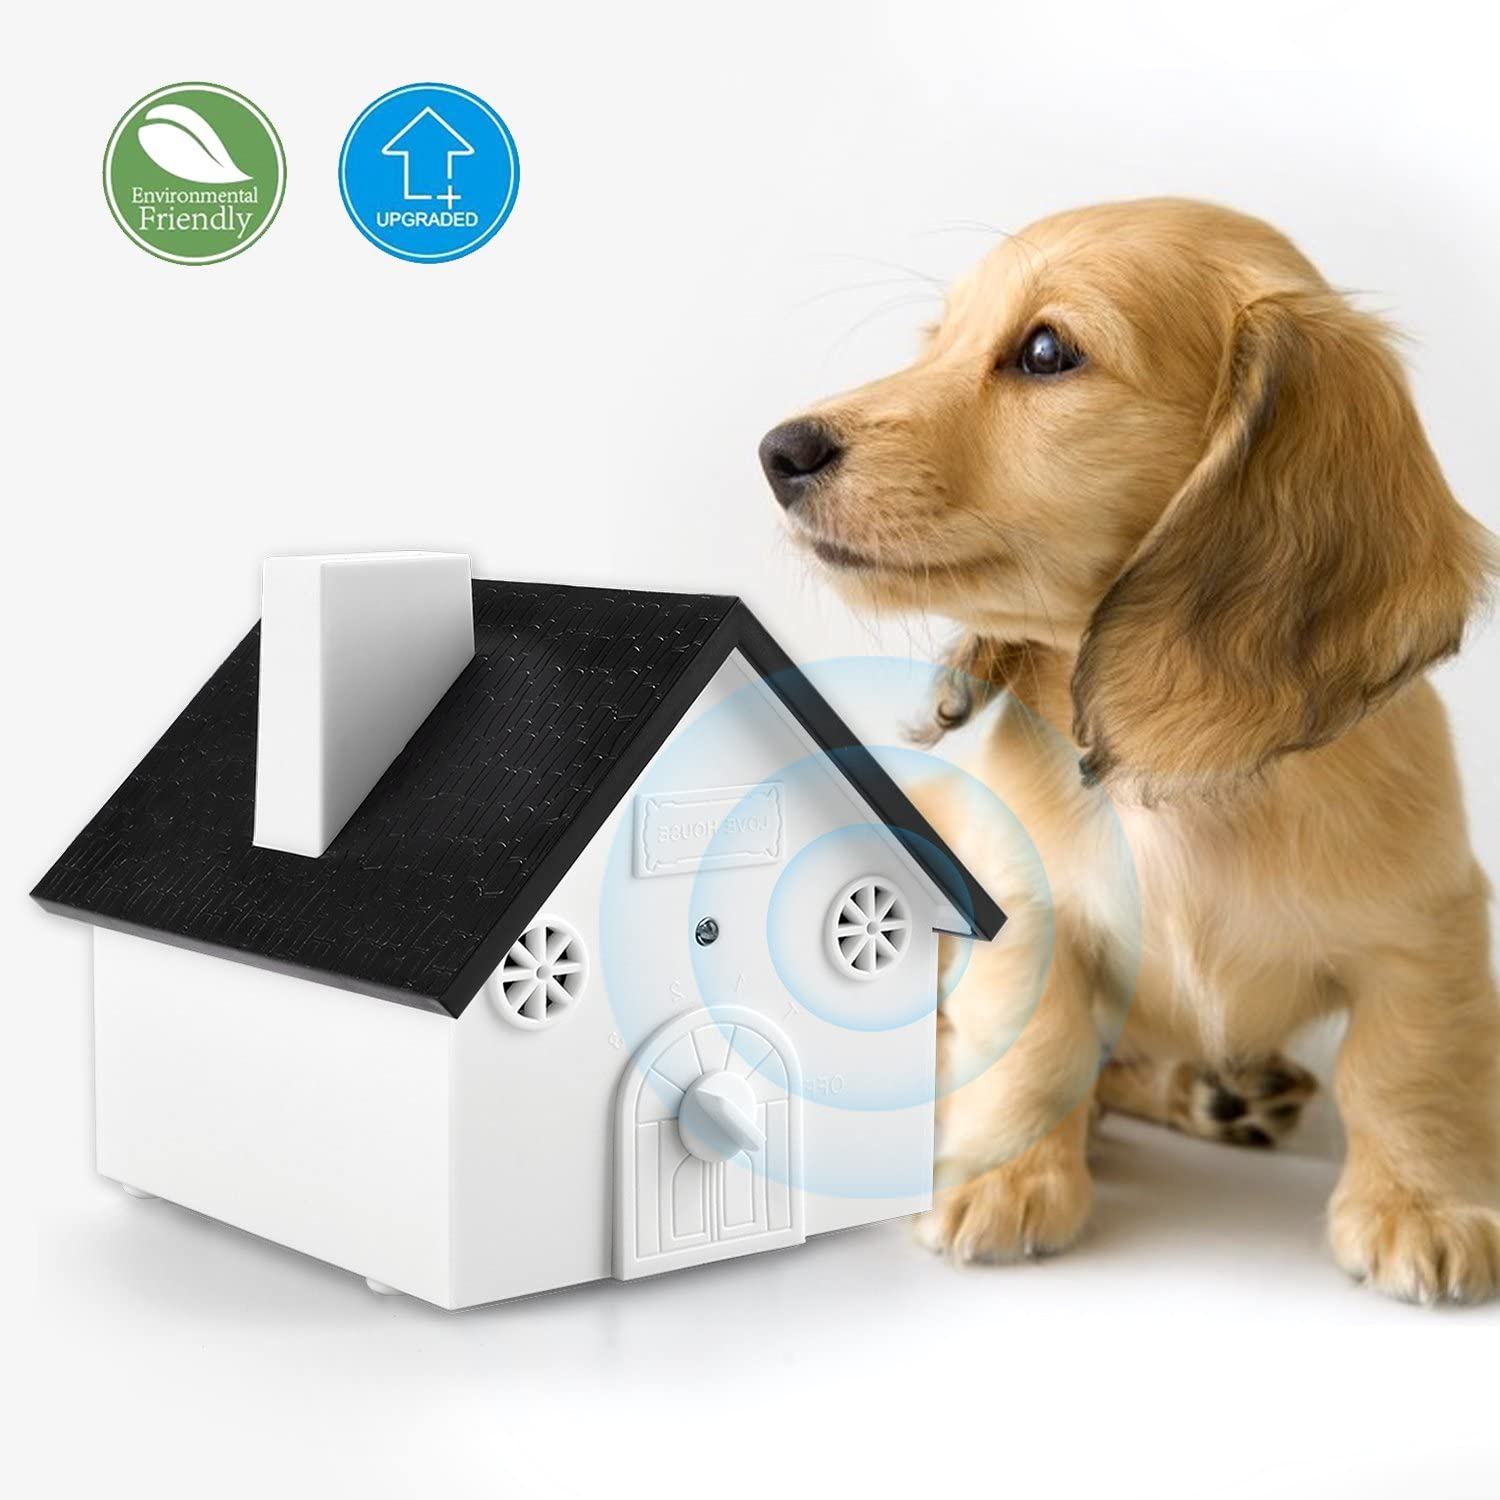 Homitem Ultrasonic Outdoor Bark Controller AntiBarking Devices Sonic Bark Deterrent by, No Harm to Dogs Or Other Pets,Plant,Human,Easy Hanging Mounting,3 Modes,Birdhouse Shaped(White)